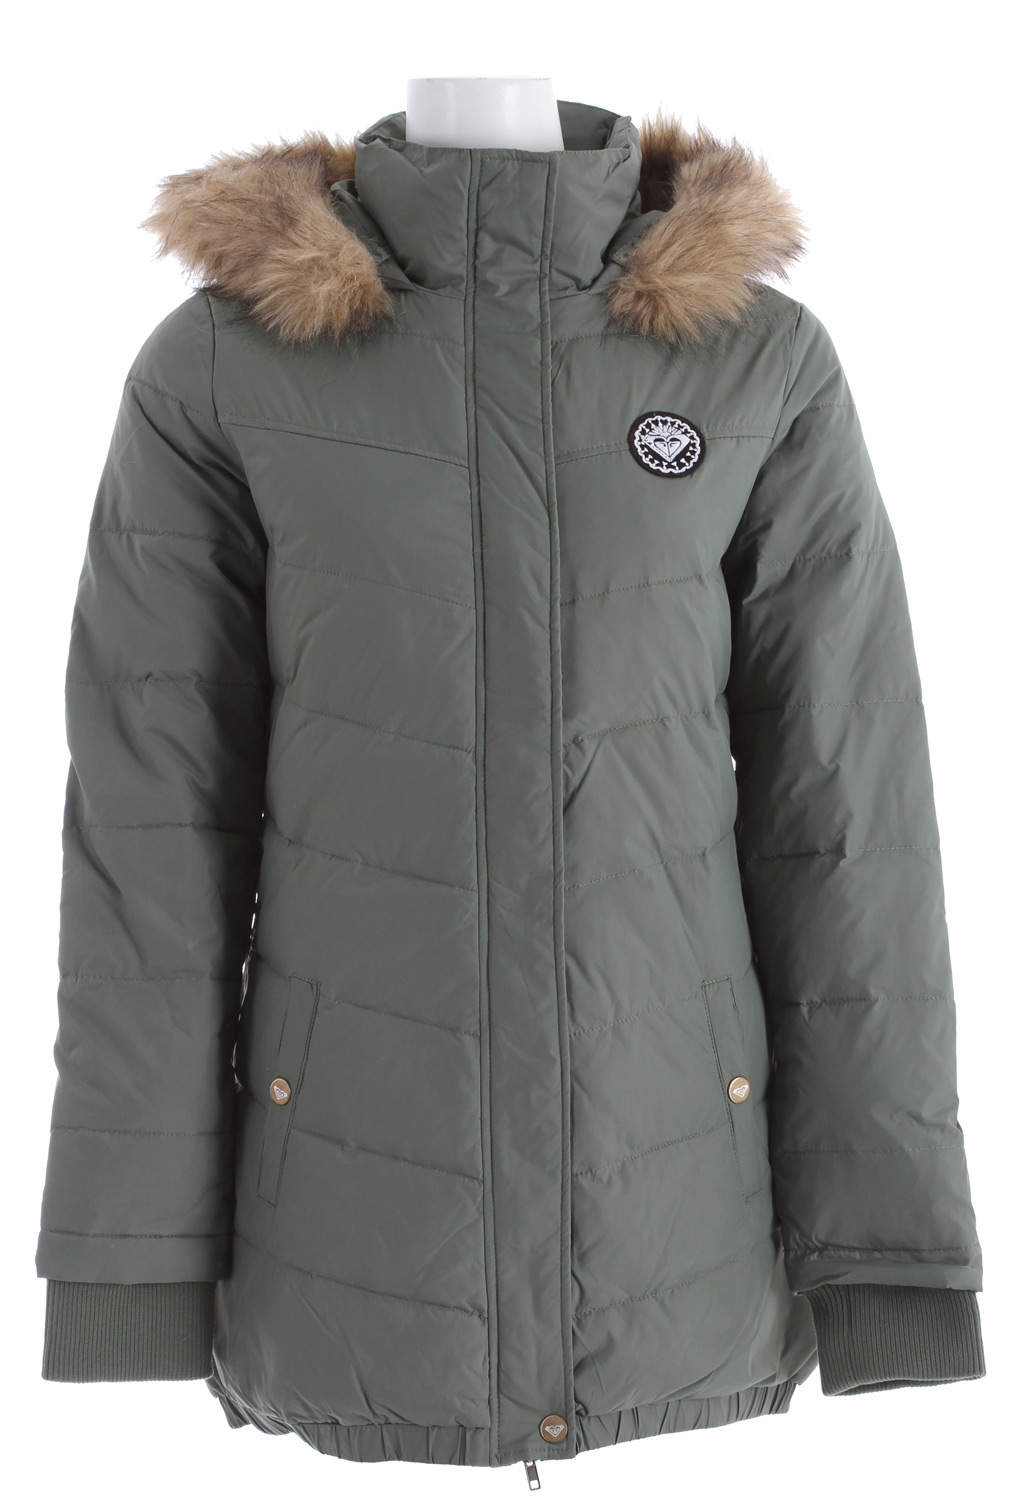 "Surf Shake things up this season with a cozy puffy jacket! Key Features of the Roxy Snow Globe Jacket: 100% Nylon with water resistant coating. Zip front long jacket with removeable fur trim and logo patch. 180 gms fill/80 gms down/ 100 gms ployball. 32"" hps. - $90.95"